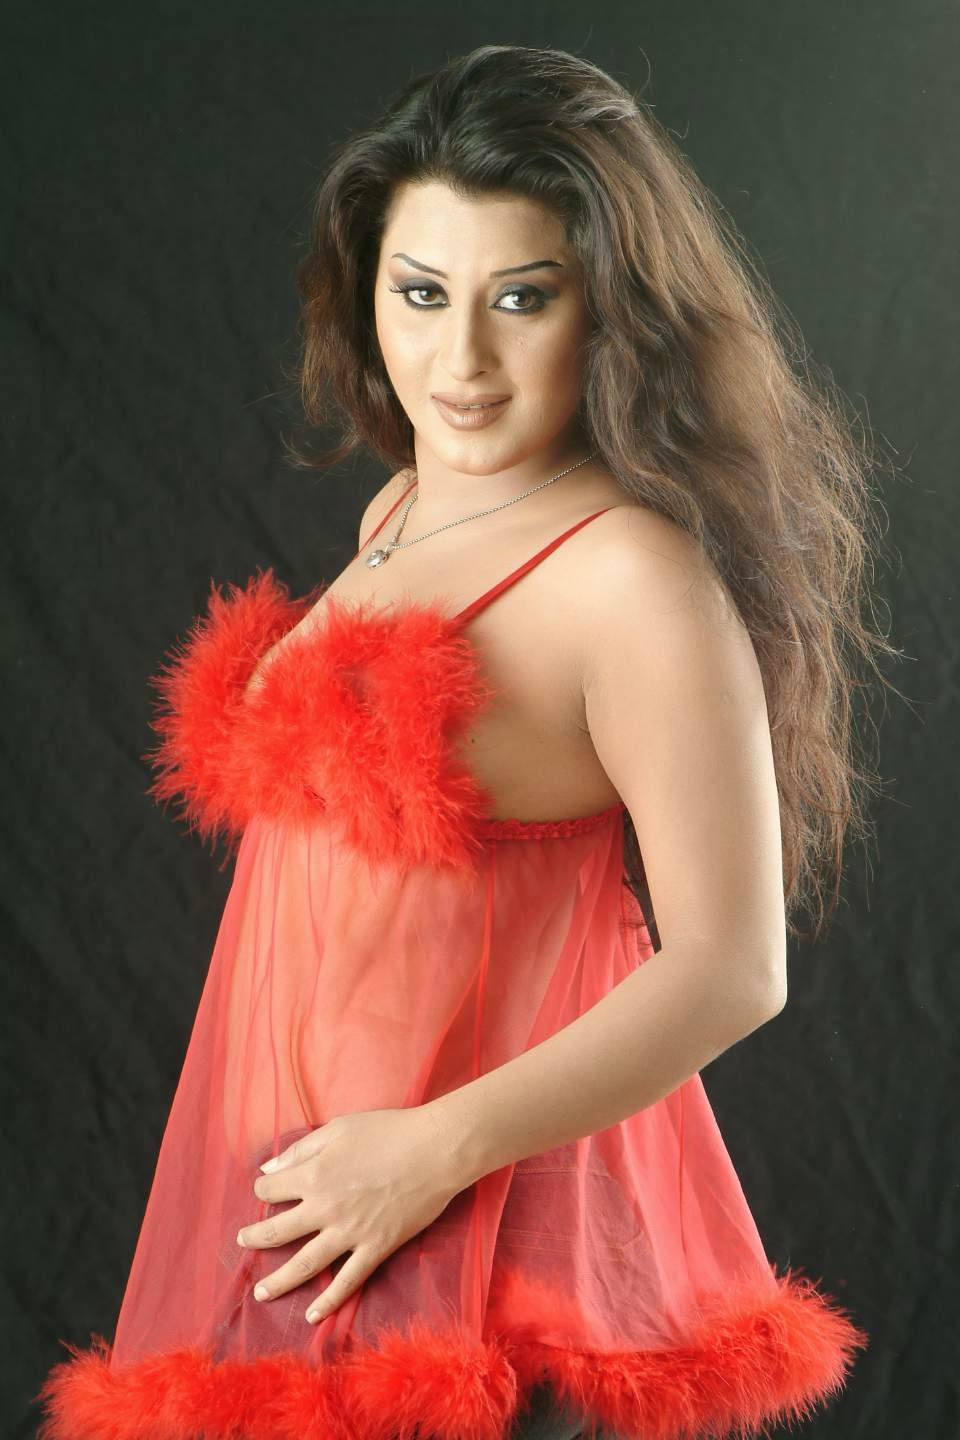 hot peshawar actress sex pictures